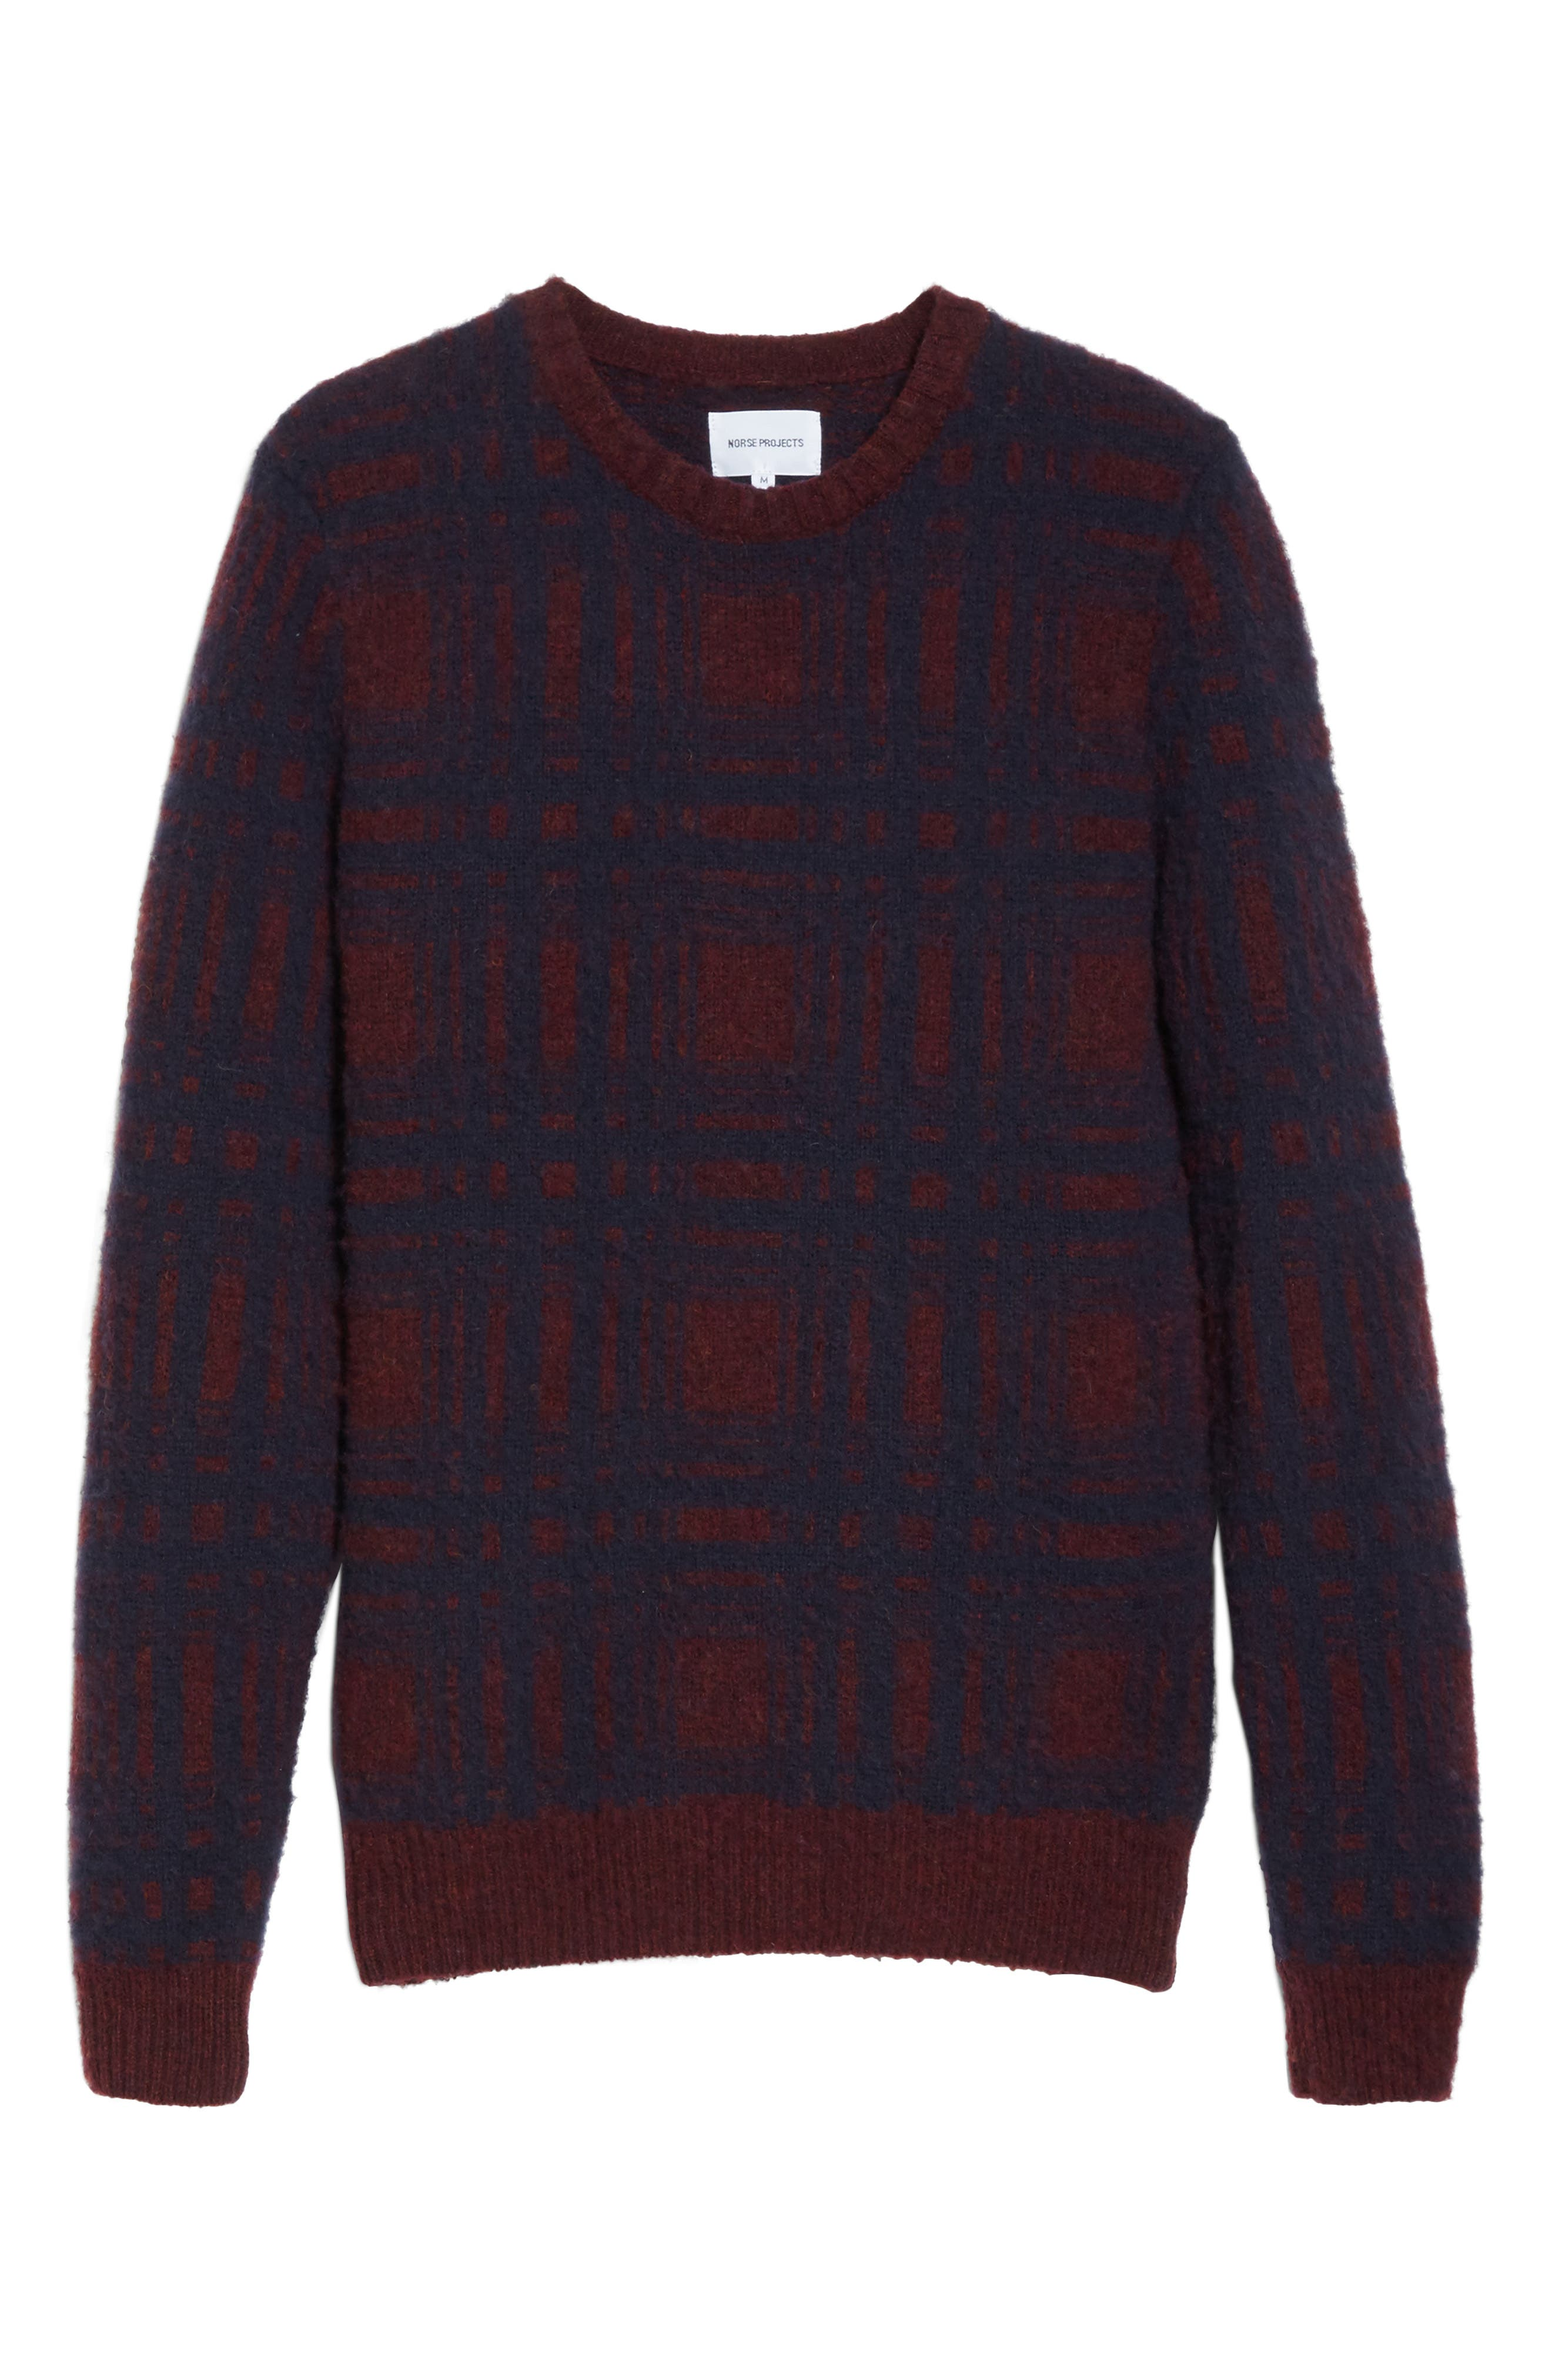 Sam Intarsia Check Wool Sweater,                             Alternate thumbnail 6, color,                             606